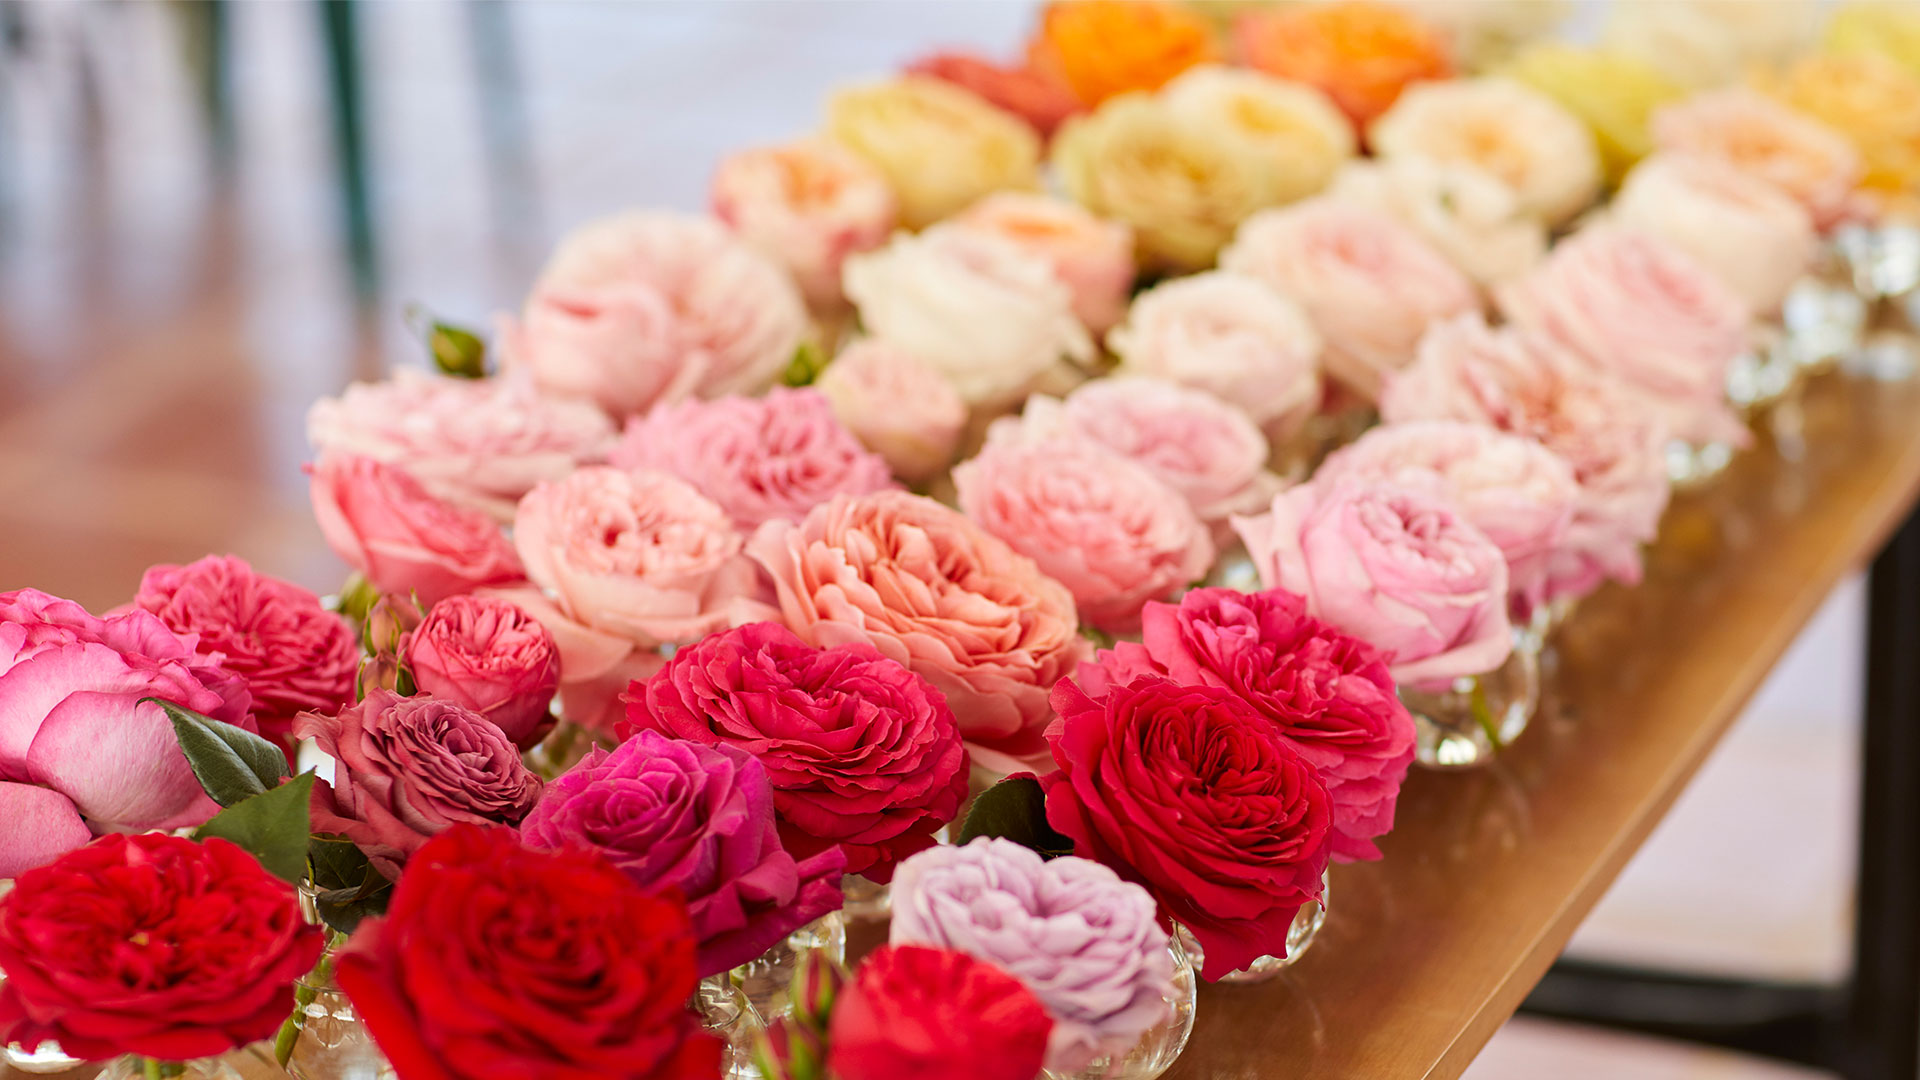 Everything's Coming Up Roses Host J Schwanke shares some history behind the beloved rose and why this flower is so much more than a Valentine's Day gesture. Learn to make rose tea, a rose-inspired veggie tart, and visit a rose farm in South America… everything's coming up roses!